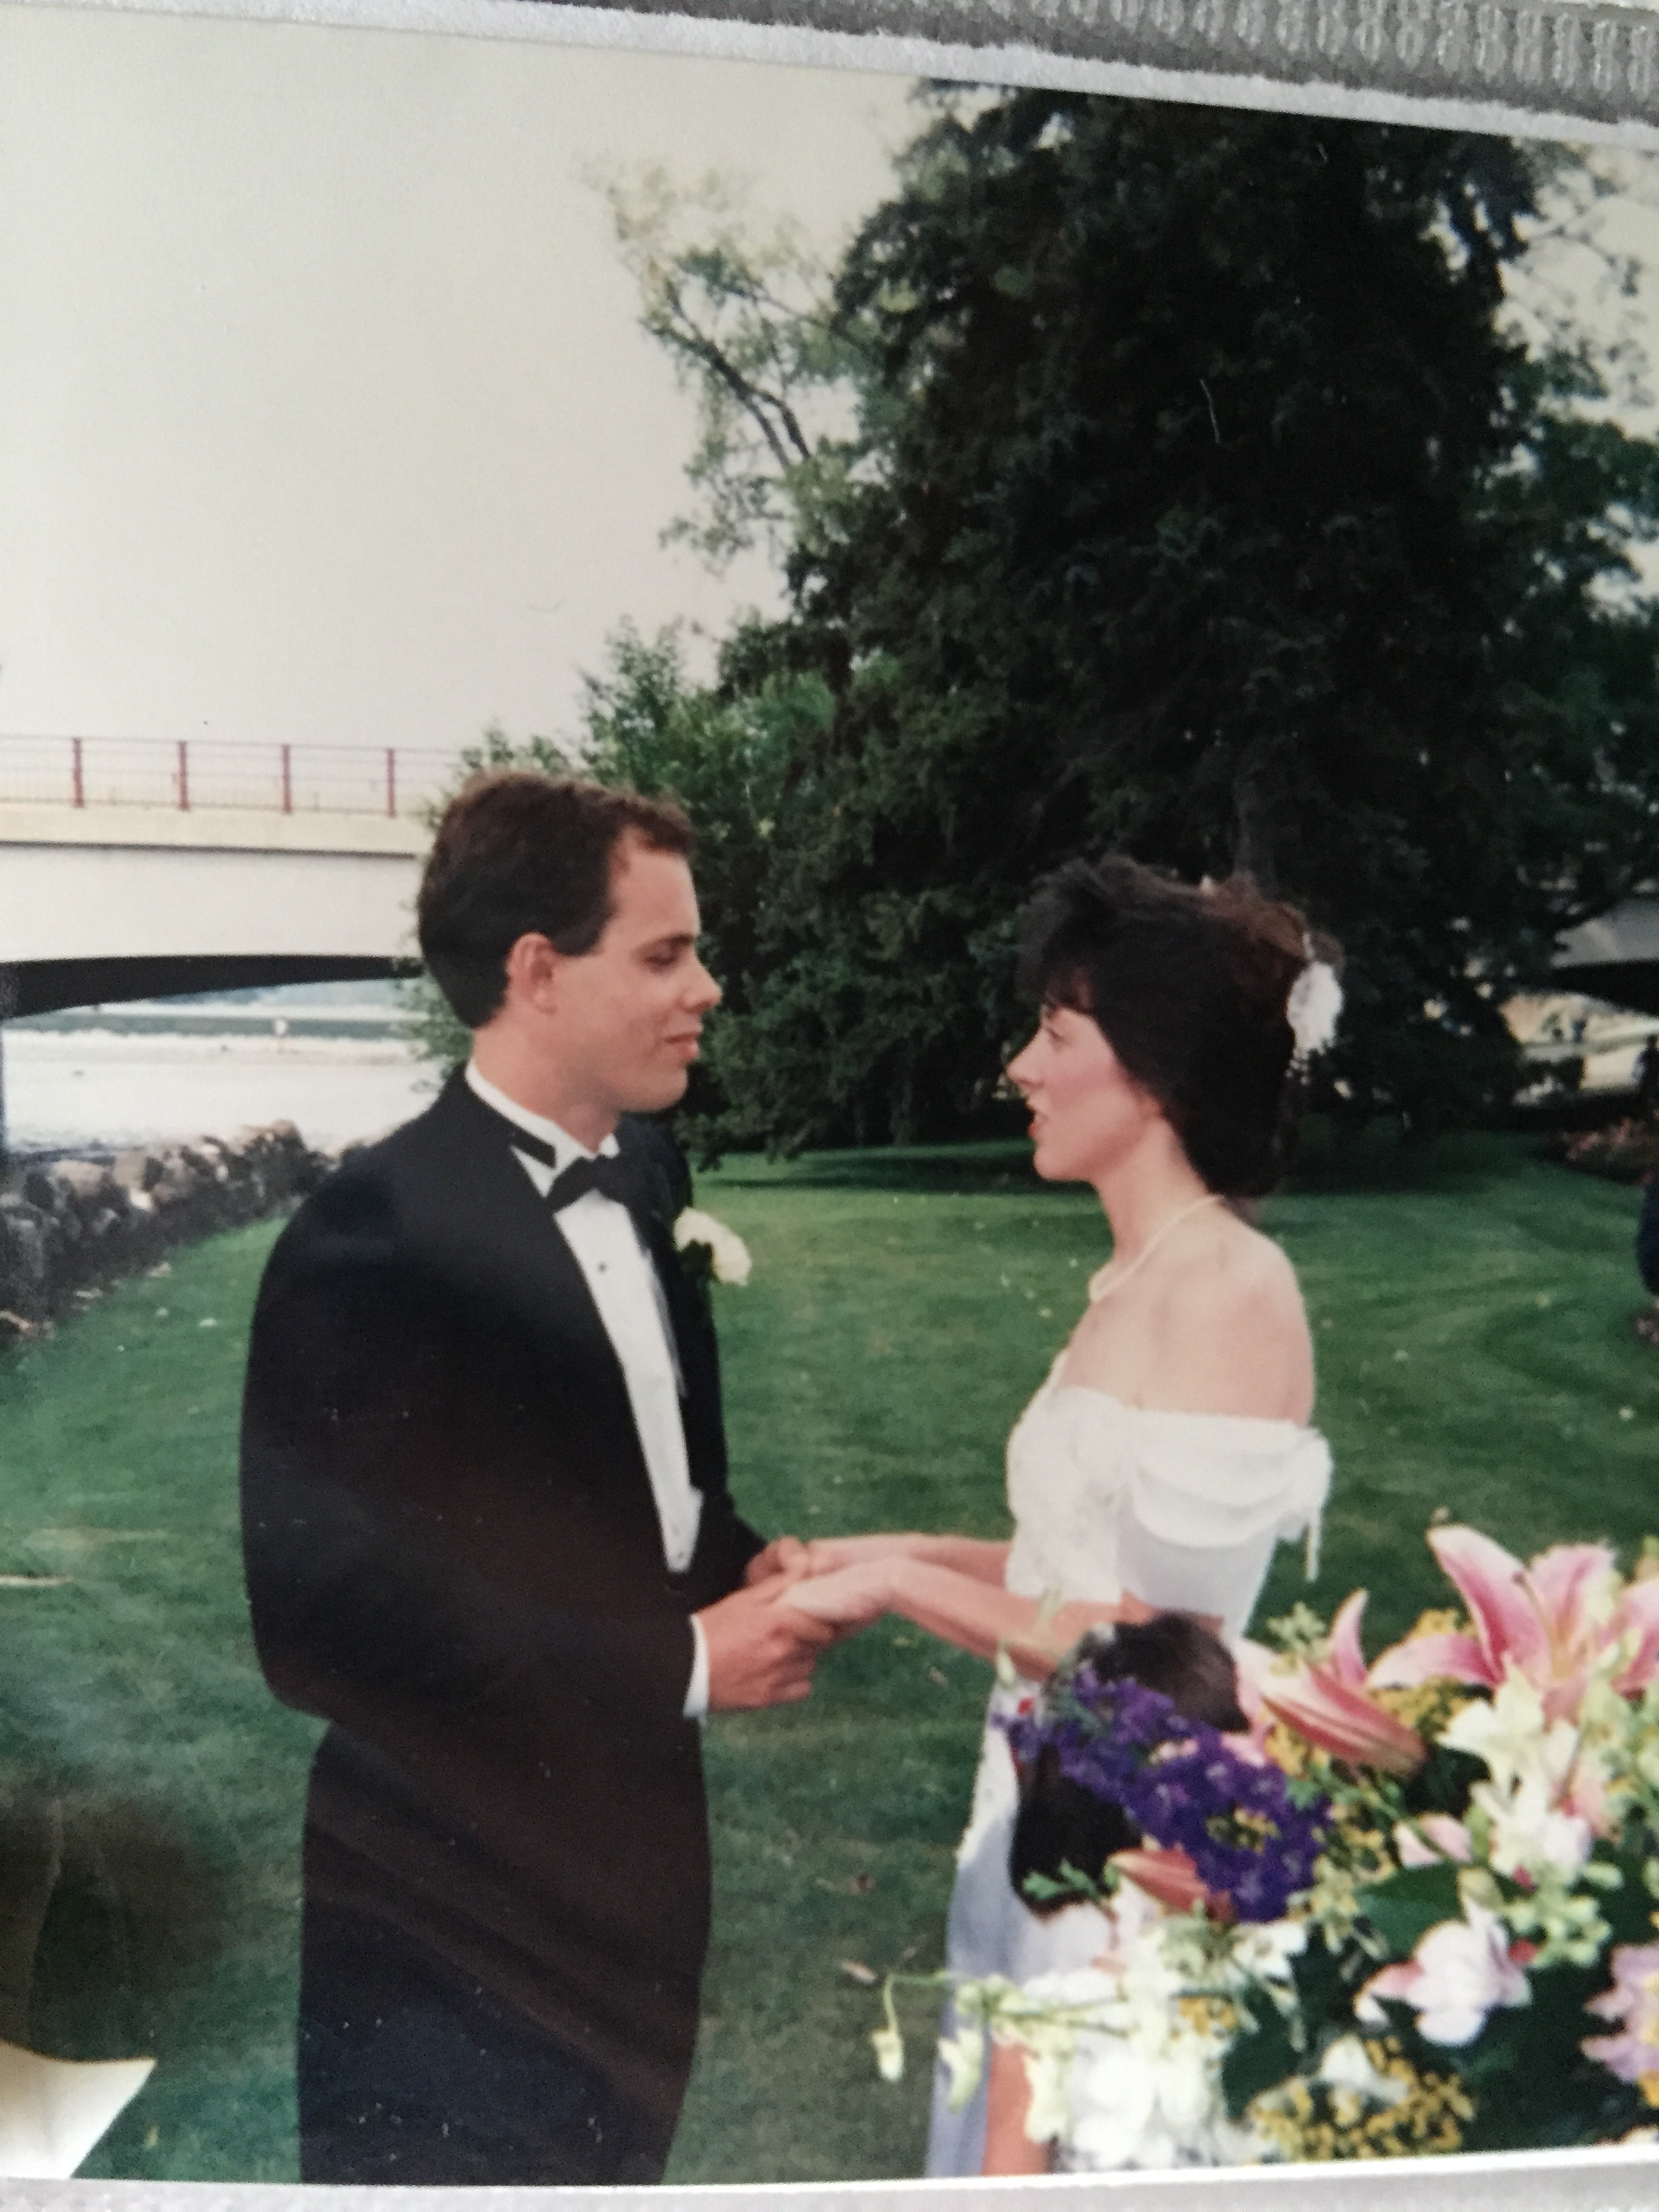 Our wedding day. August 27, 1994 - 22 years ago